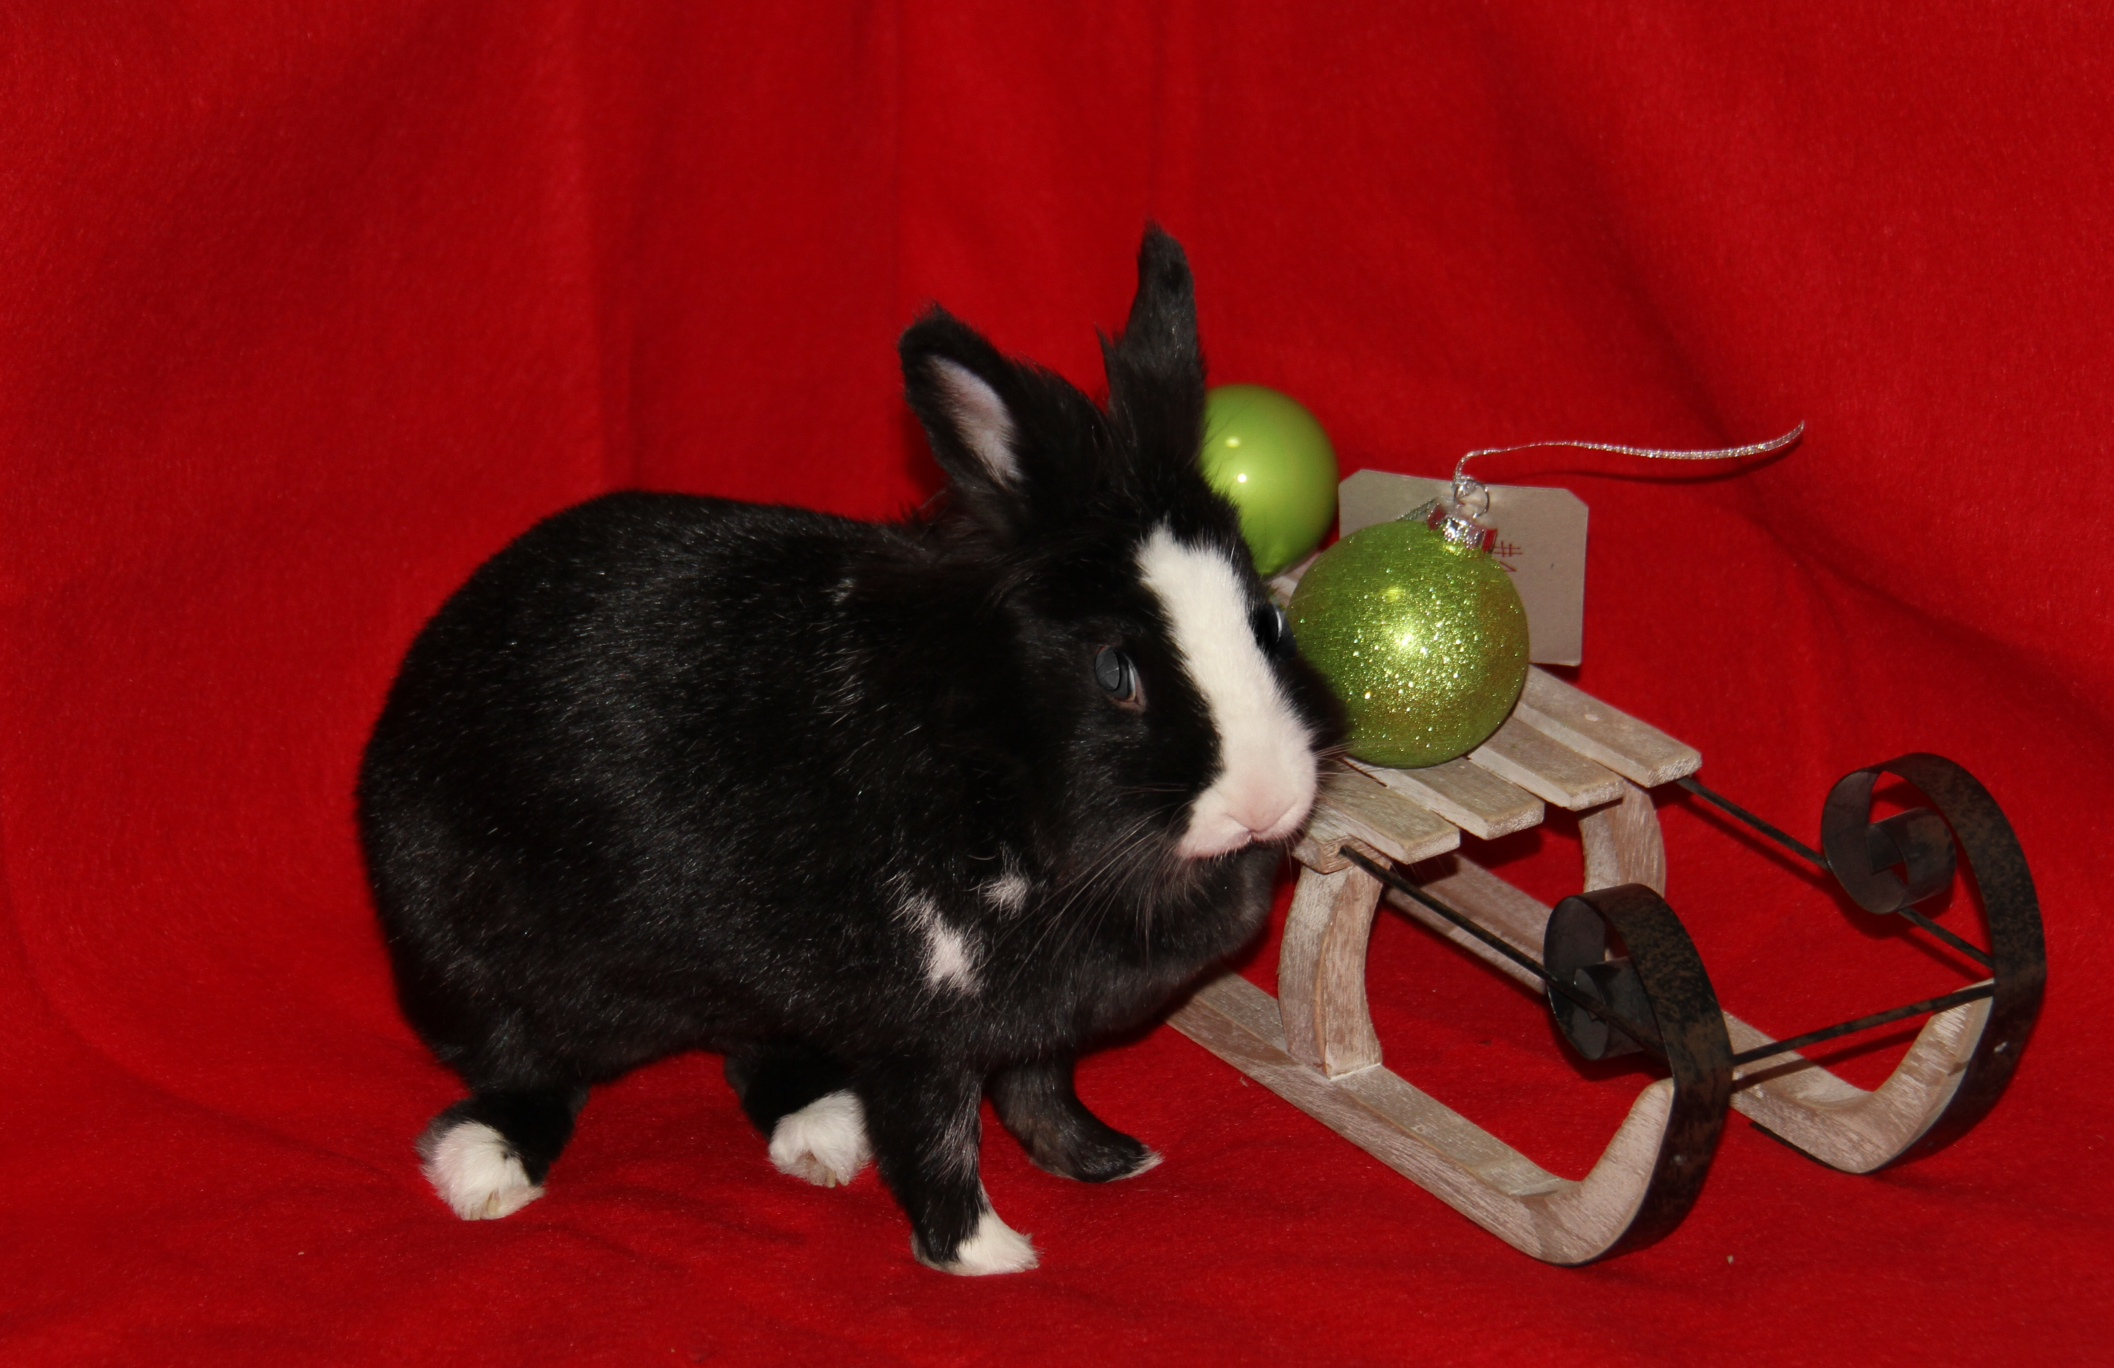 Bunny Gets Curious During Her Christmas Photoshoot 1